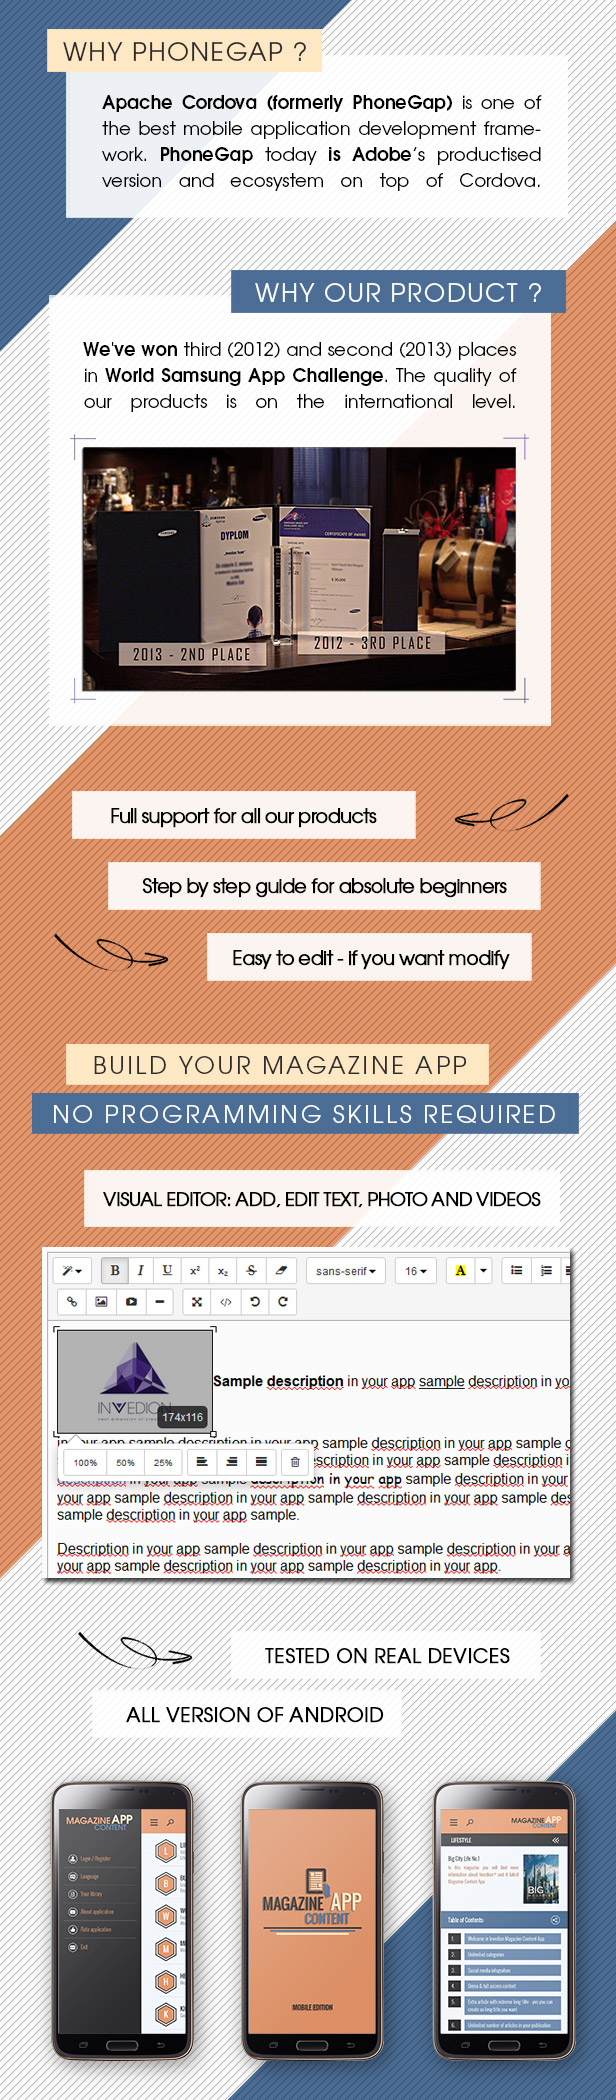 Magazine Content App With CMS - Android [ AdMob | Push Notifications | Offline Storage ] - 2